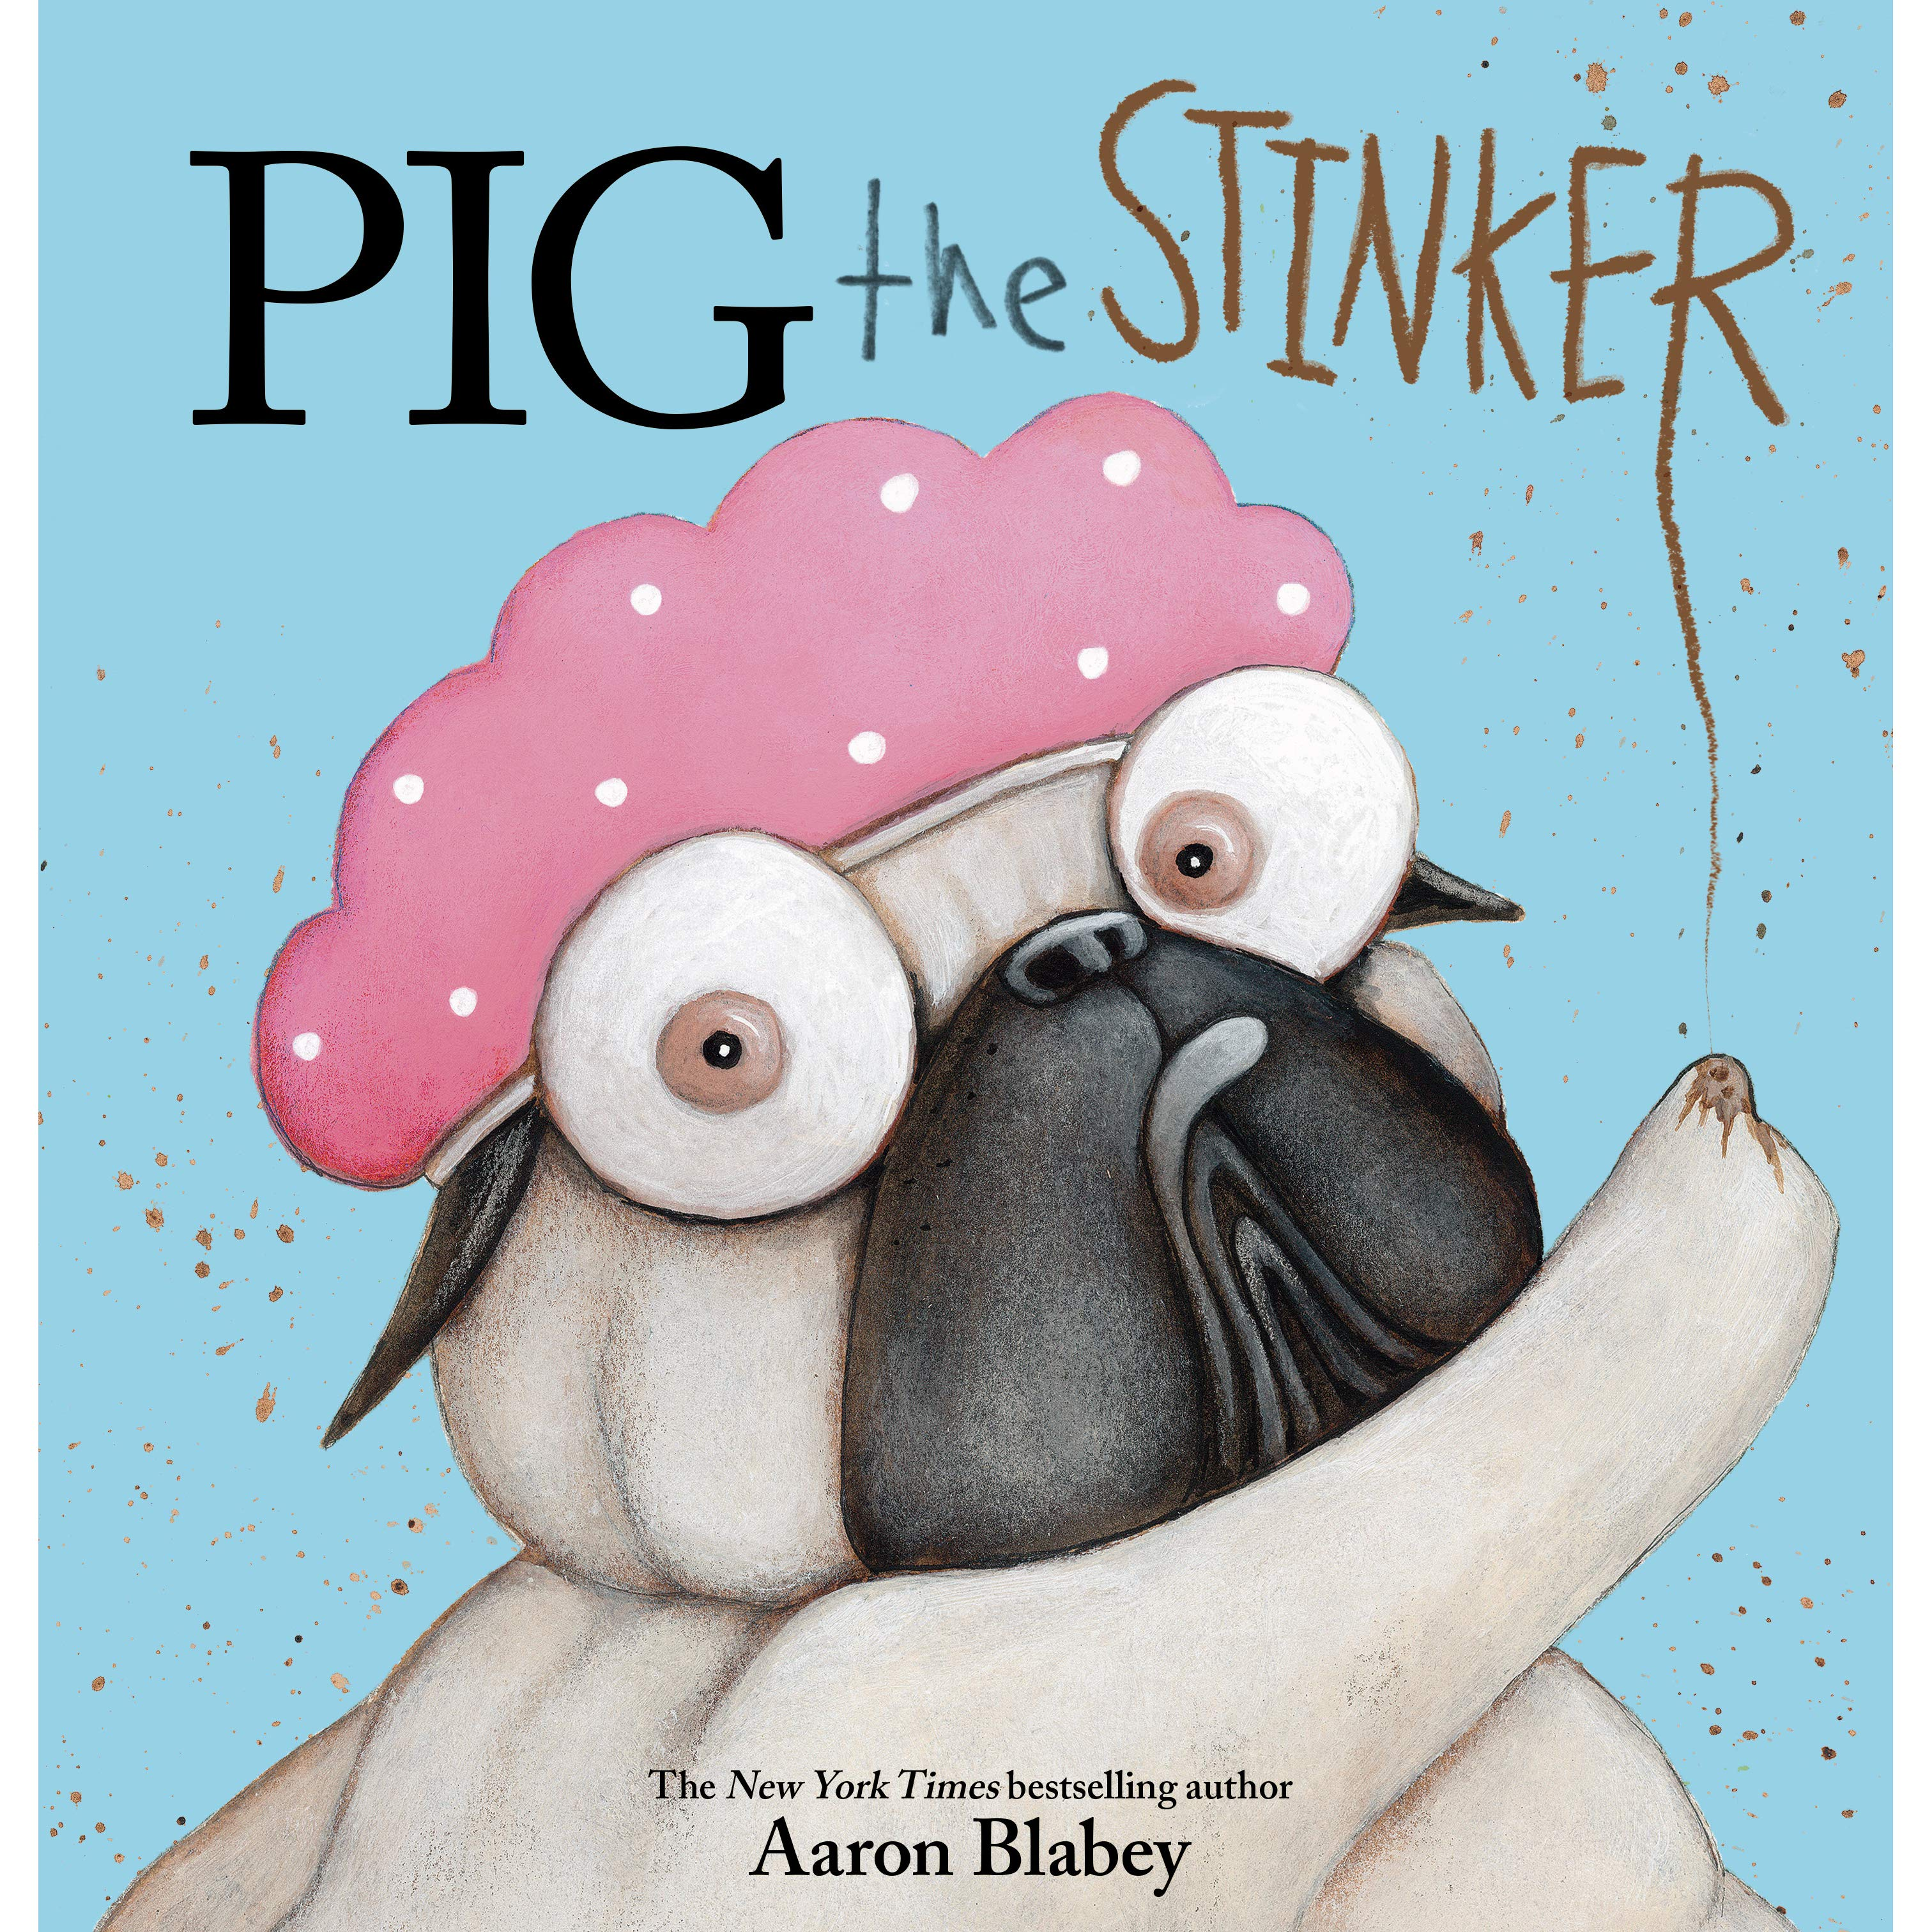 Bad guys by blabey clipart banner free library Pig the Stinker by Aaron Blabey banner free library